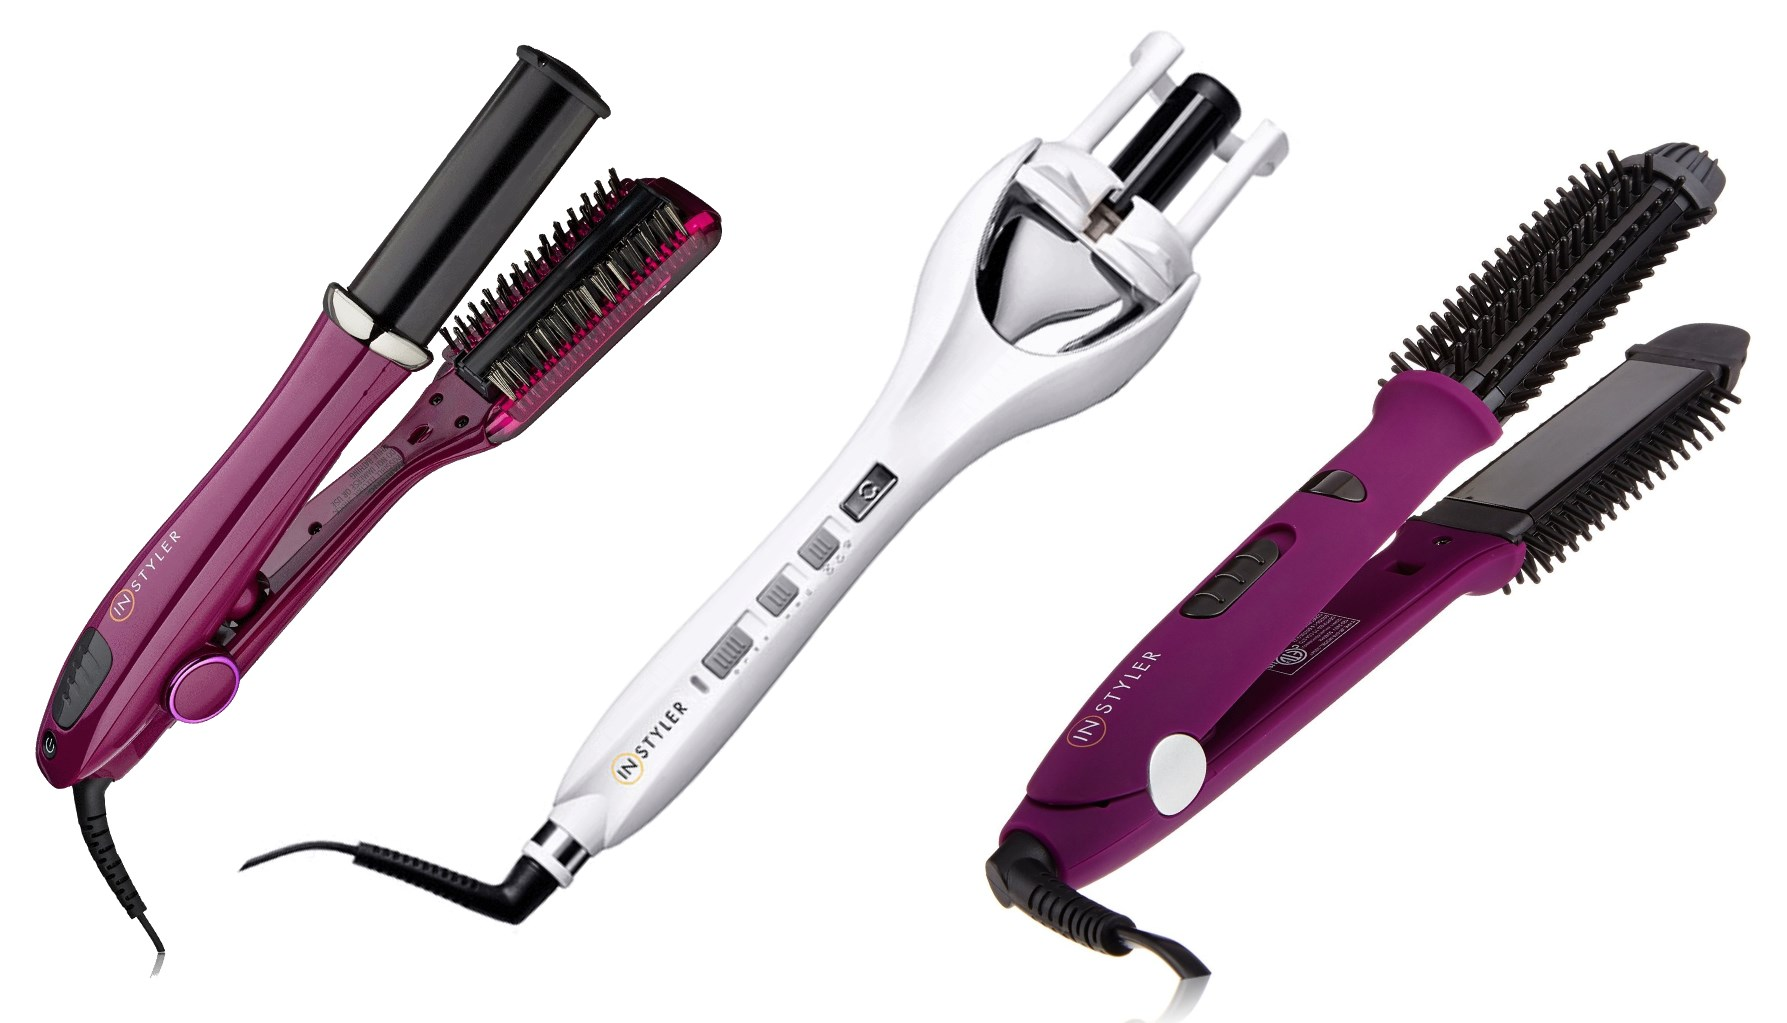 newest hair styling tools check out this great new hair tool tiger strypes 4388 | tools